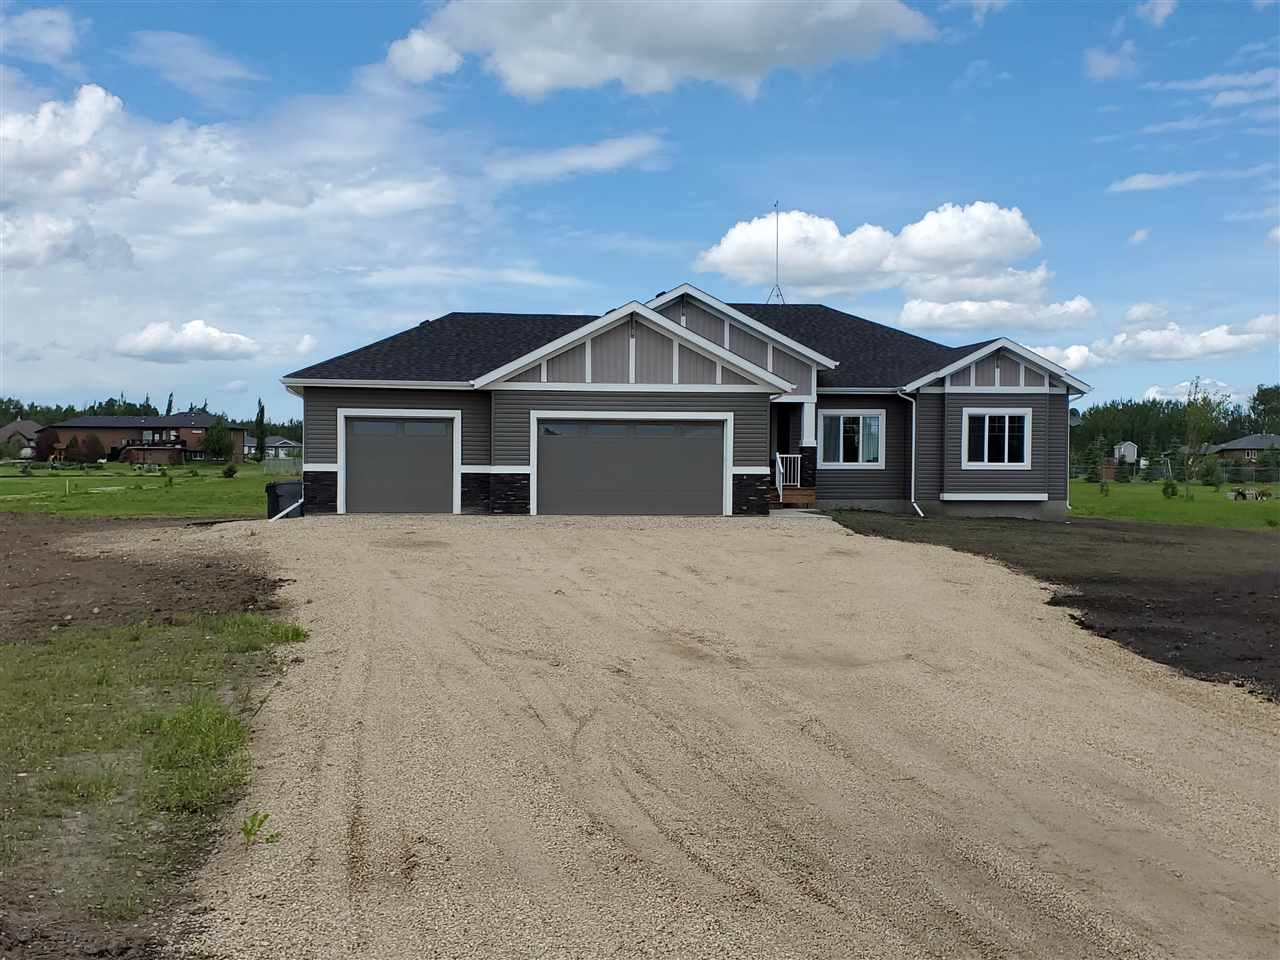 Main Photo: 8 53521 RGE RD 272: Rural Parkland County House for sale : MLS®# E4196450